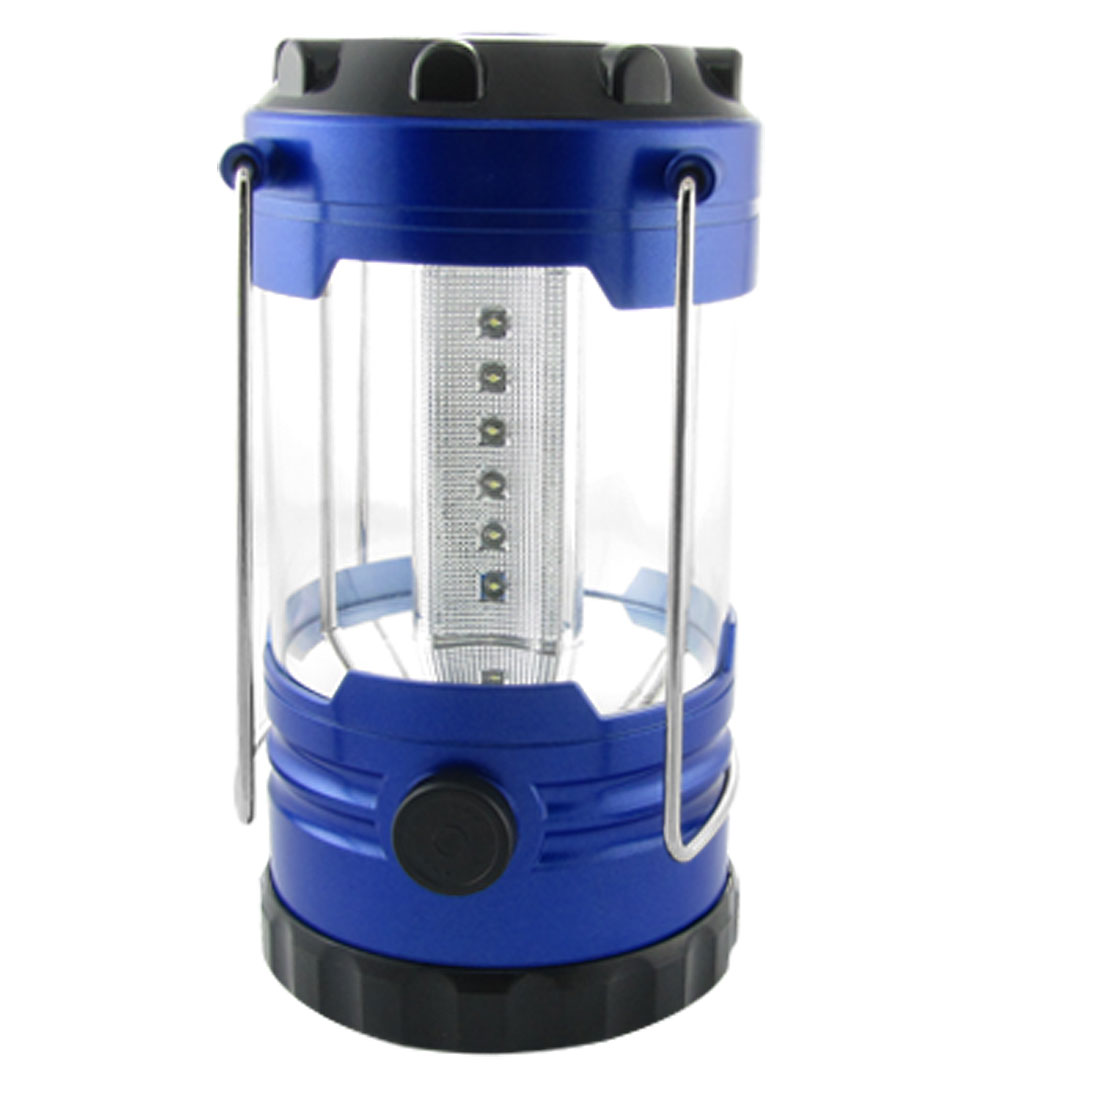 White Light 18 LEDs Portable Lamp Camping Adjustable Lantern